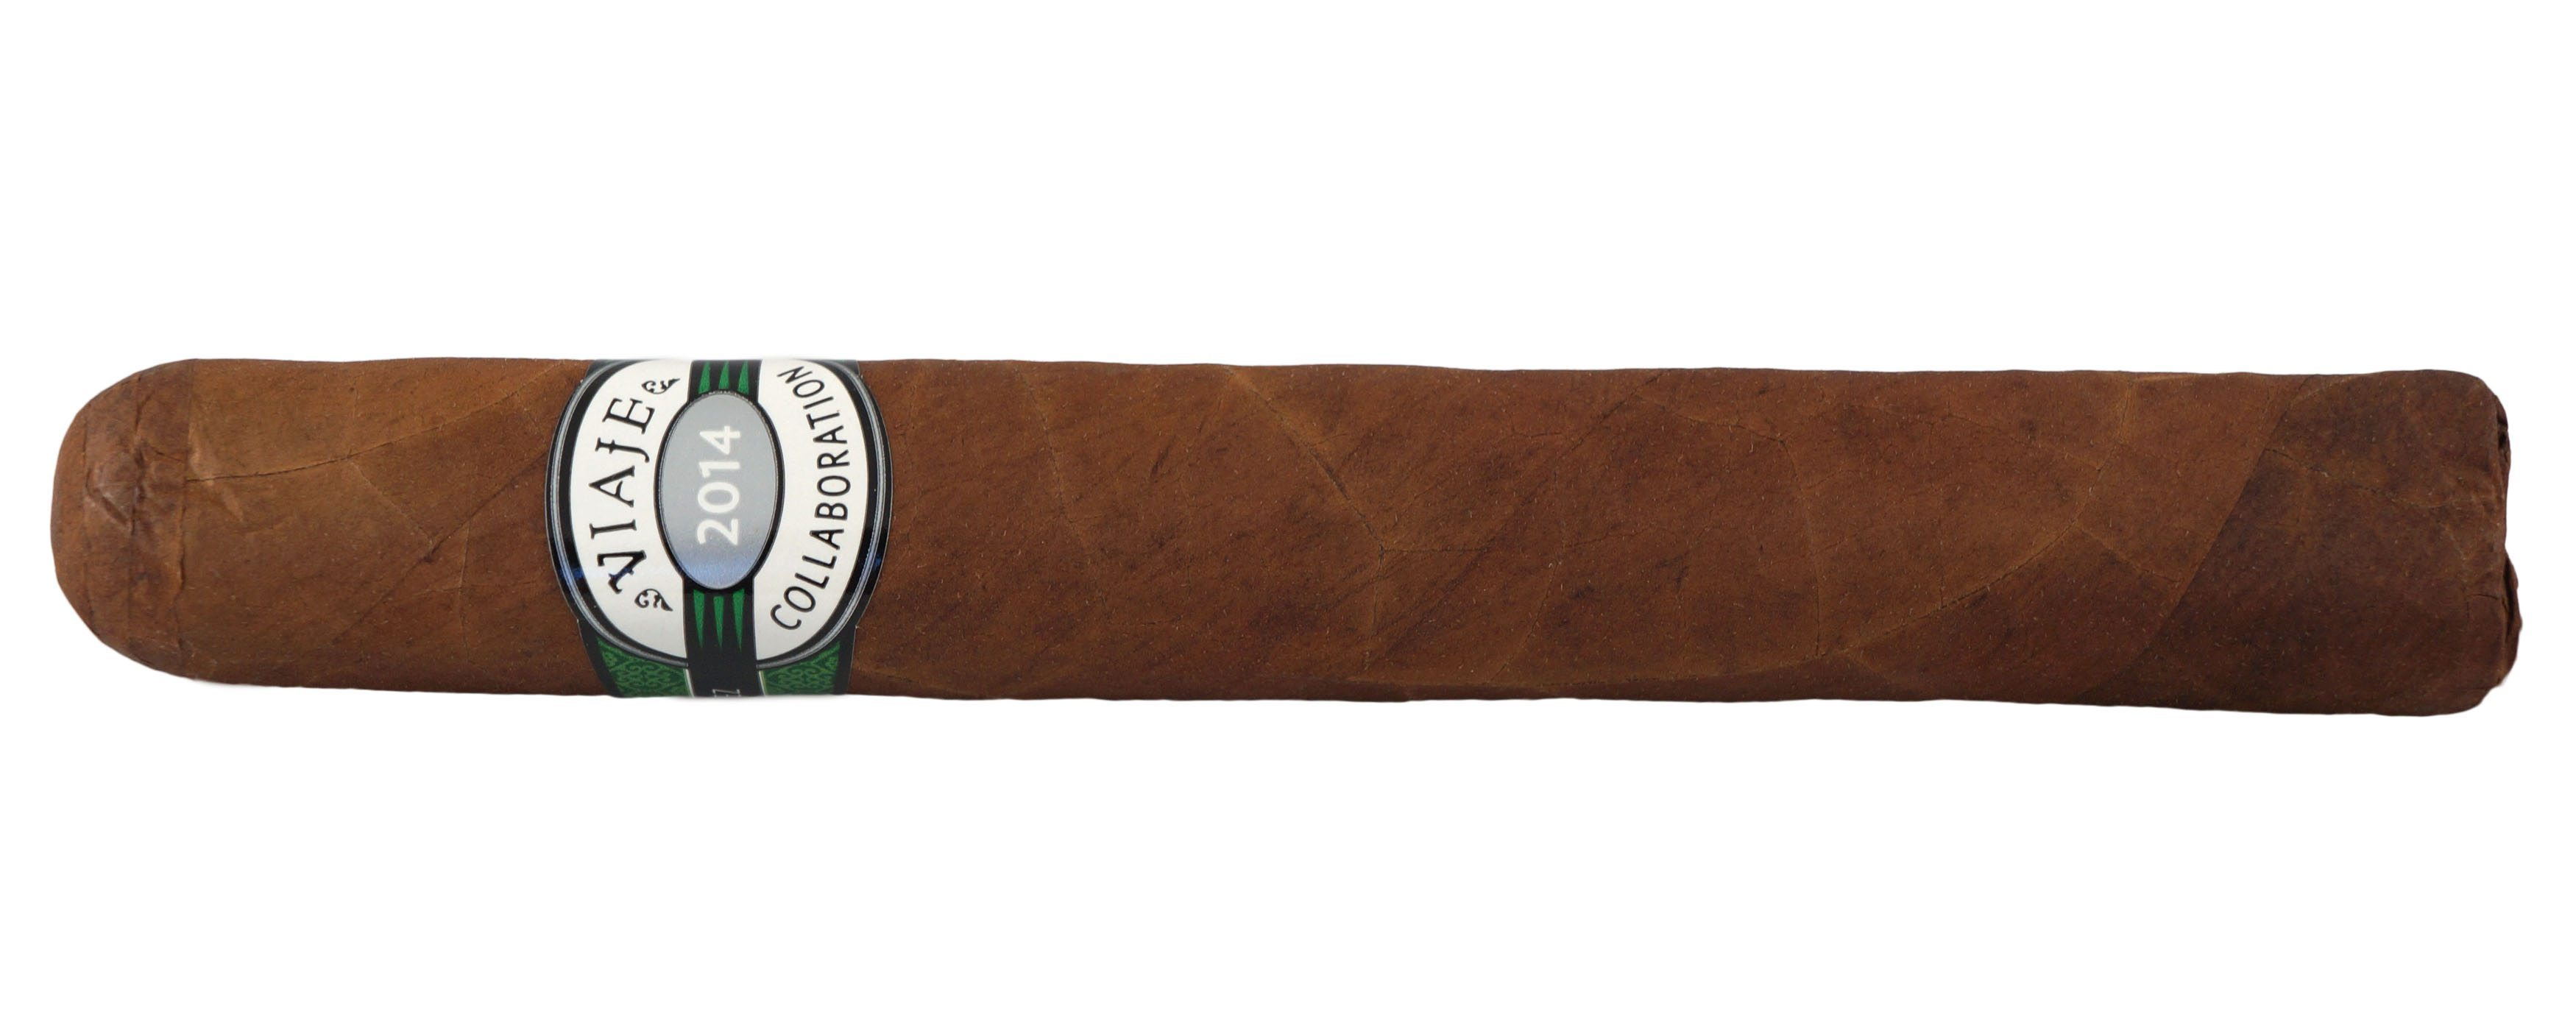 Blind Cigar Review: Viaje | Collaboration 2014 Toro